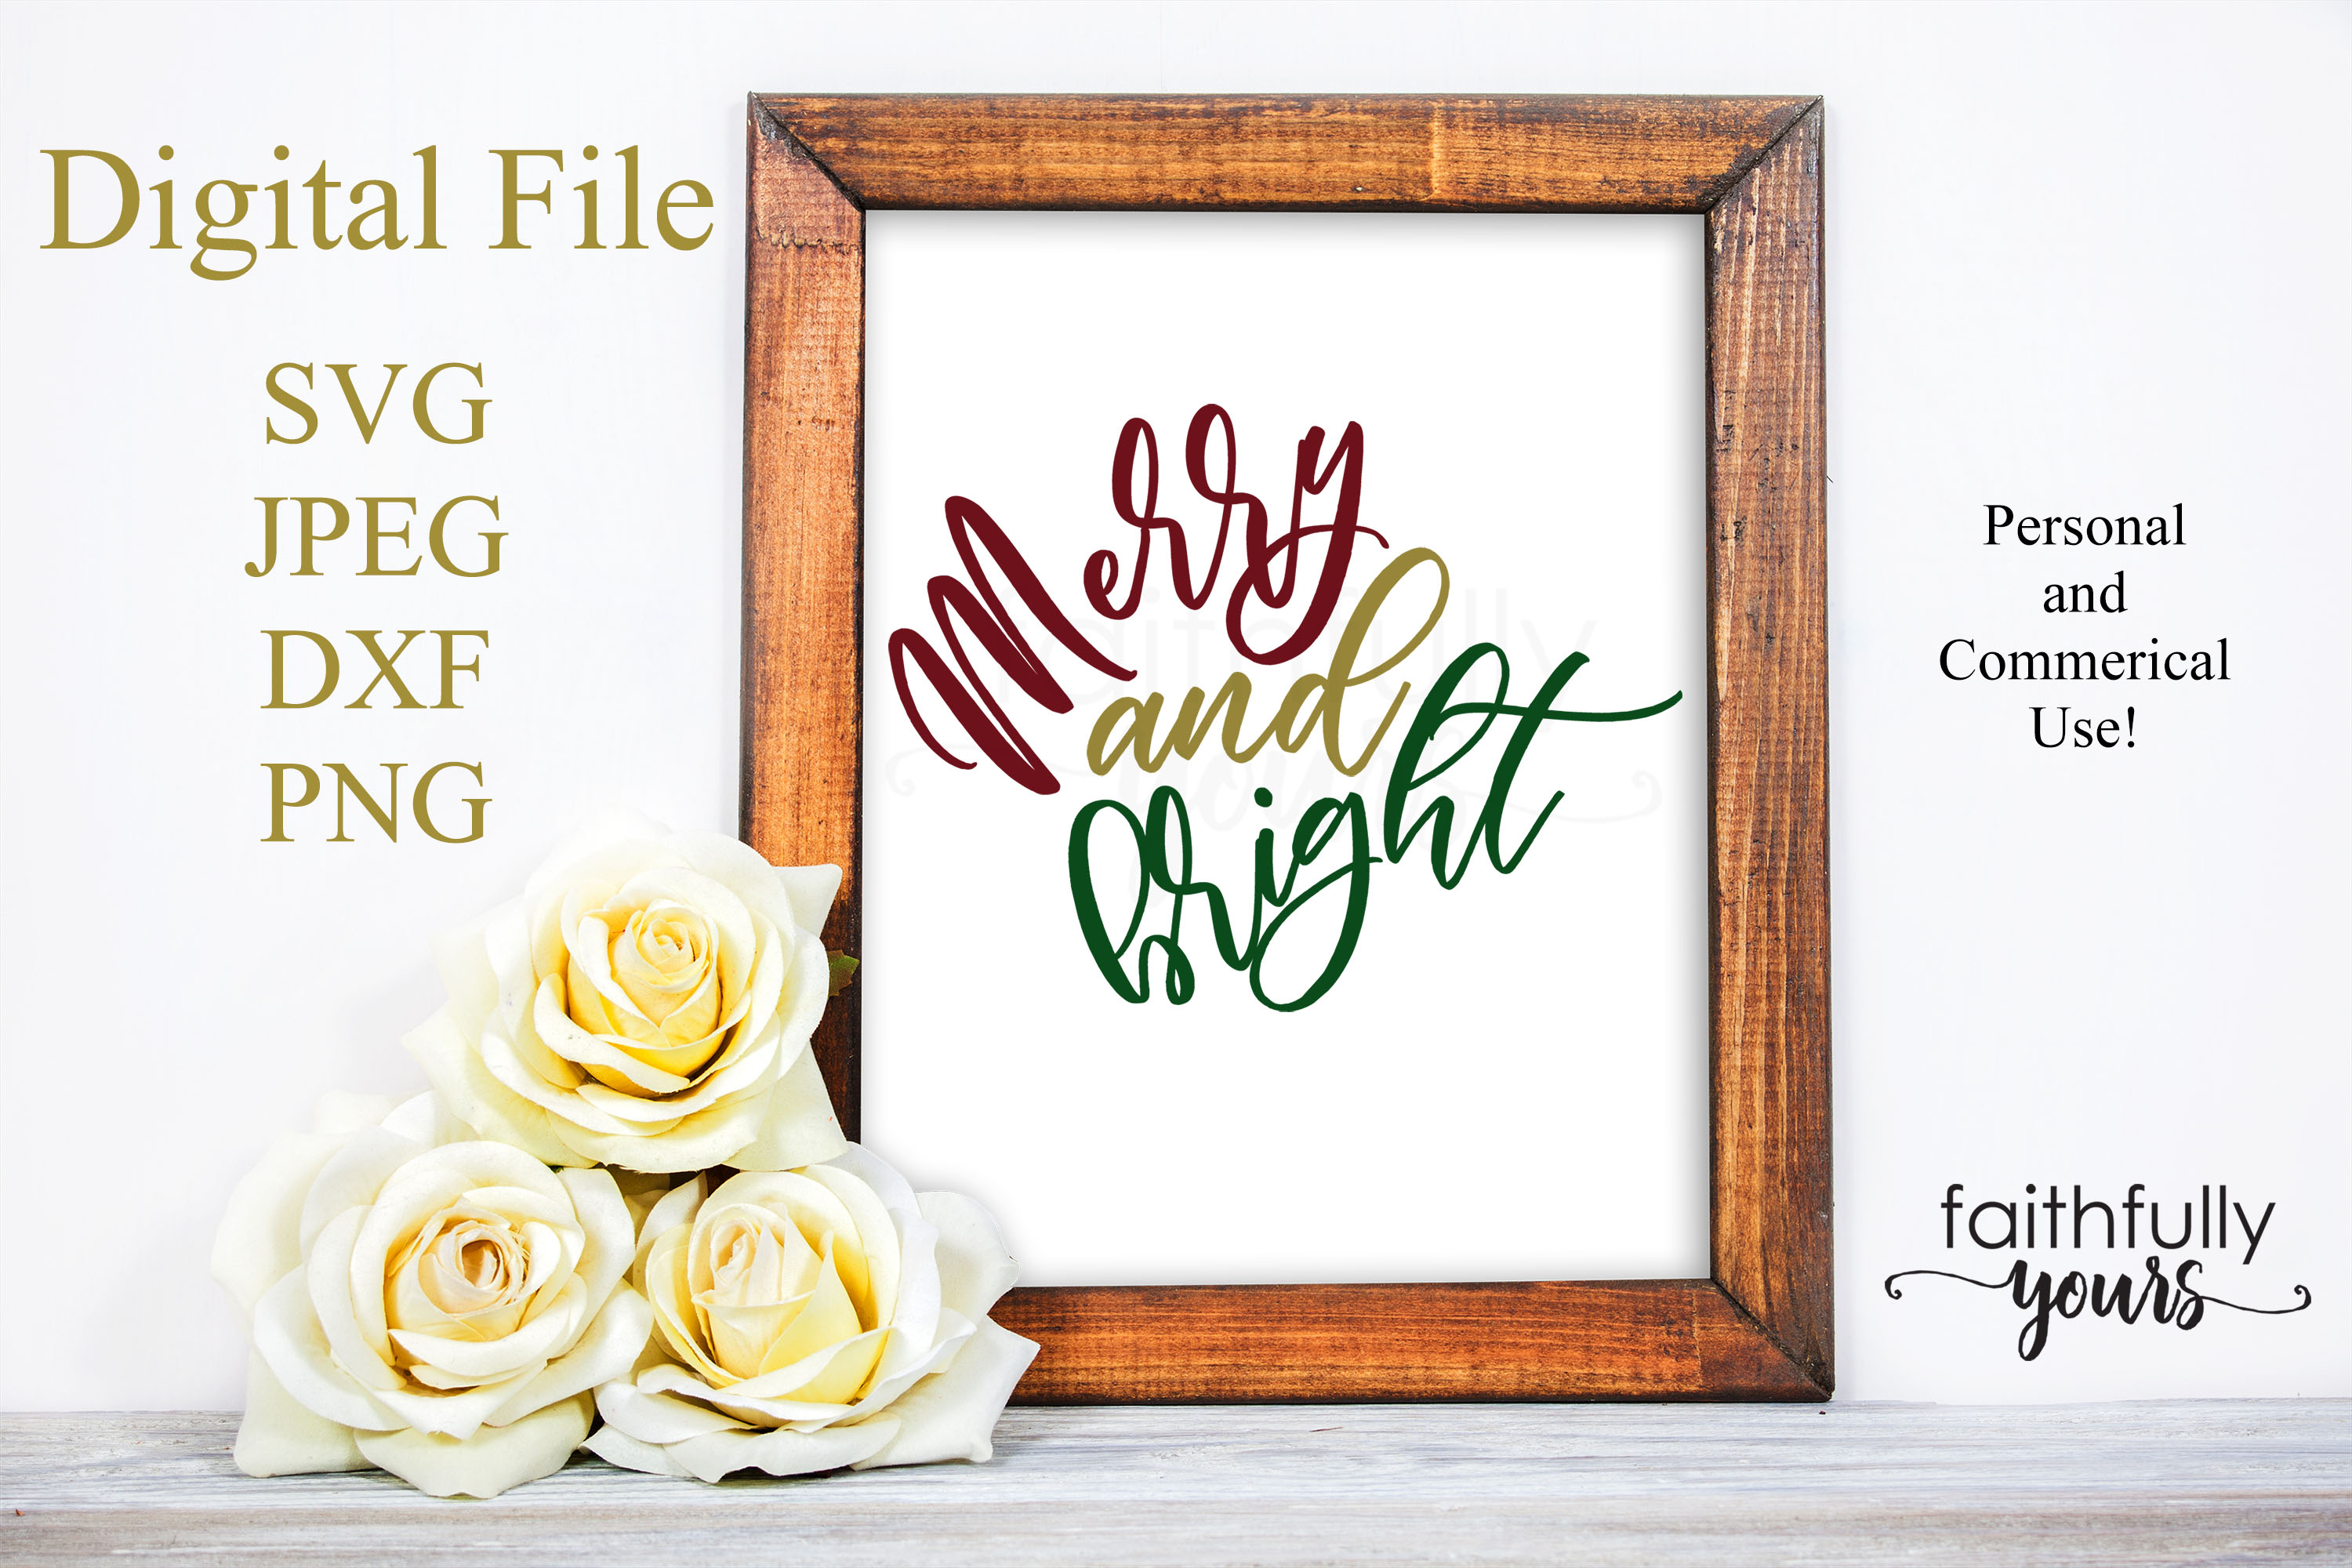 Merry and bright svg digital cut file Holiday Christmas example image 1